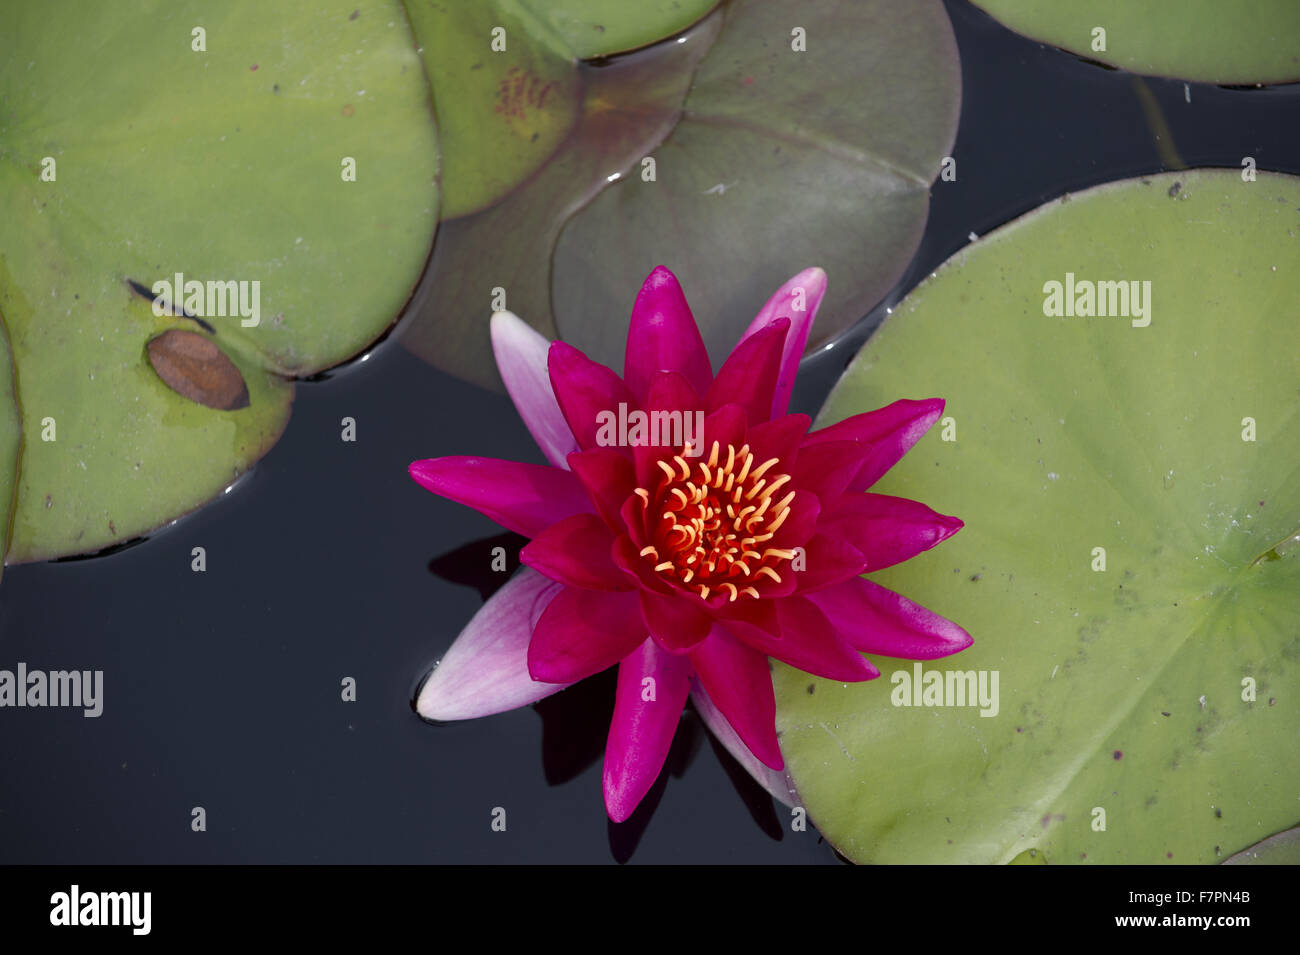 Water lilies growing in July at Bodnant Garden, Clwyd, Wales. Created by five generations of one family, Bodnant Stock Photo